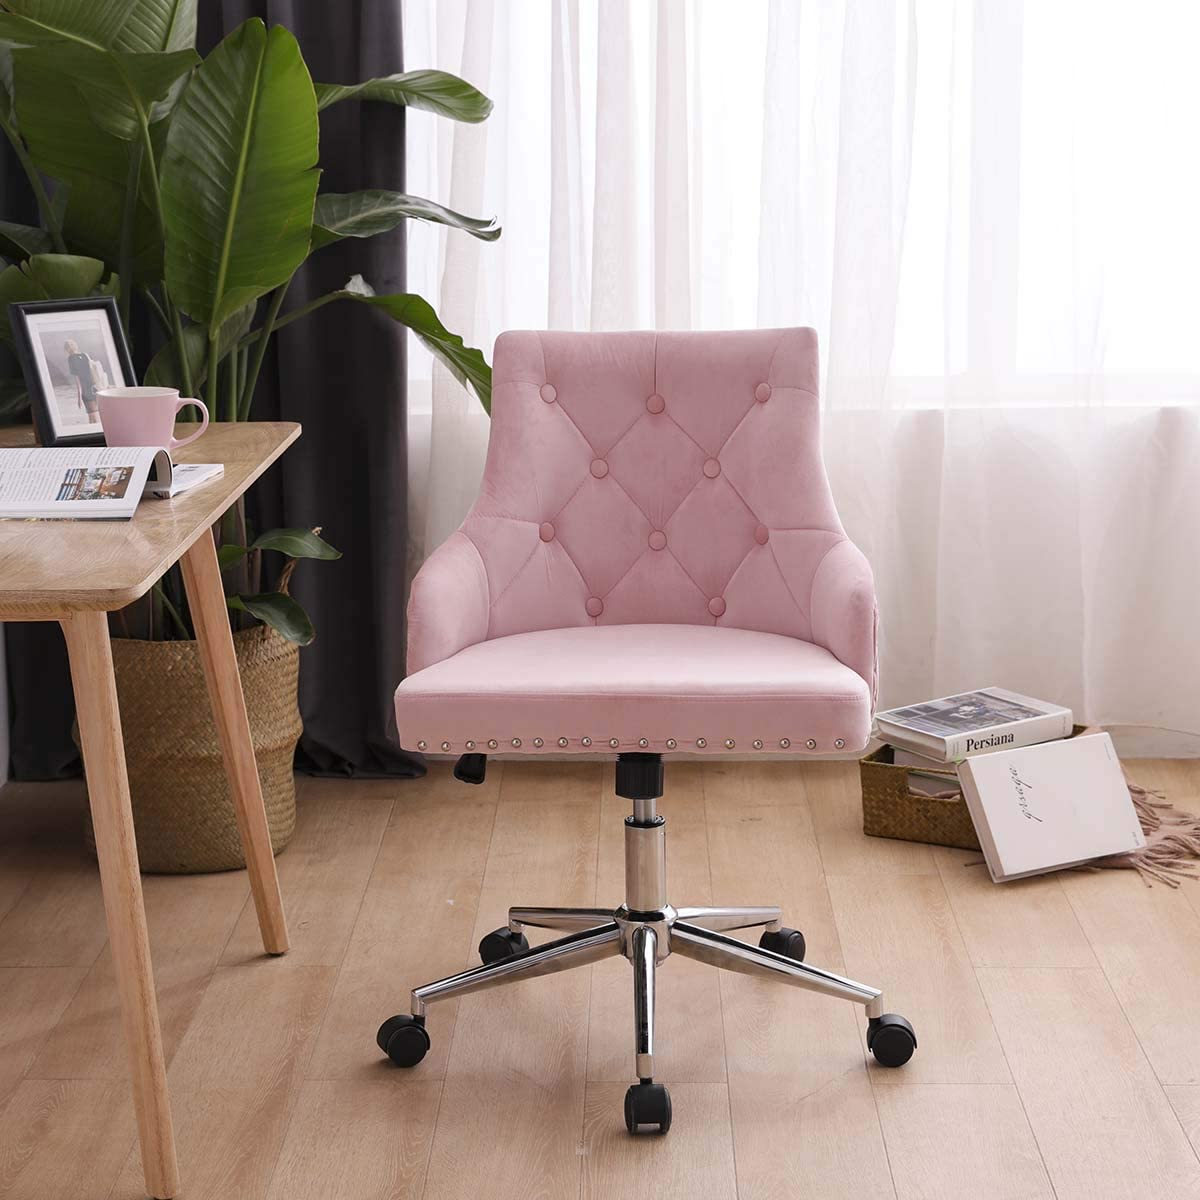 Hironpal Pink Crushed Velvet Fabric Home Office Chair Swivel High Adjustable Computer Desk Chairs Graceful Reception Chairs Amazon Co Uk Kitchen Home